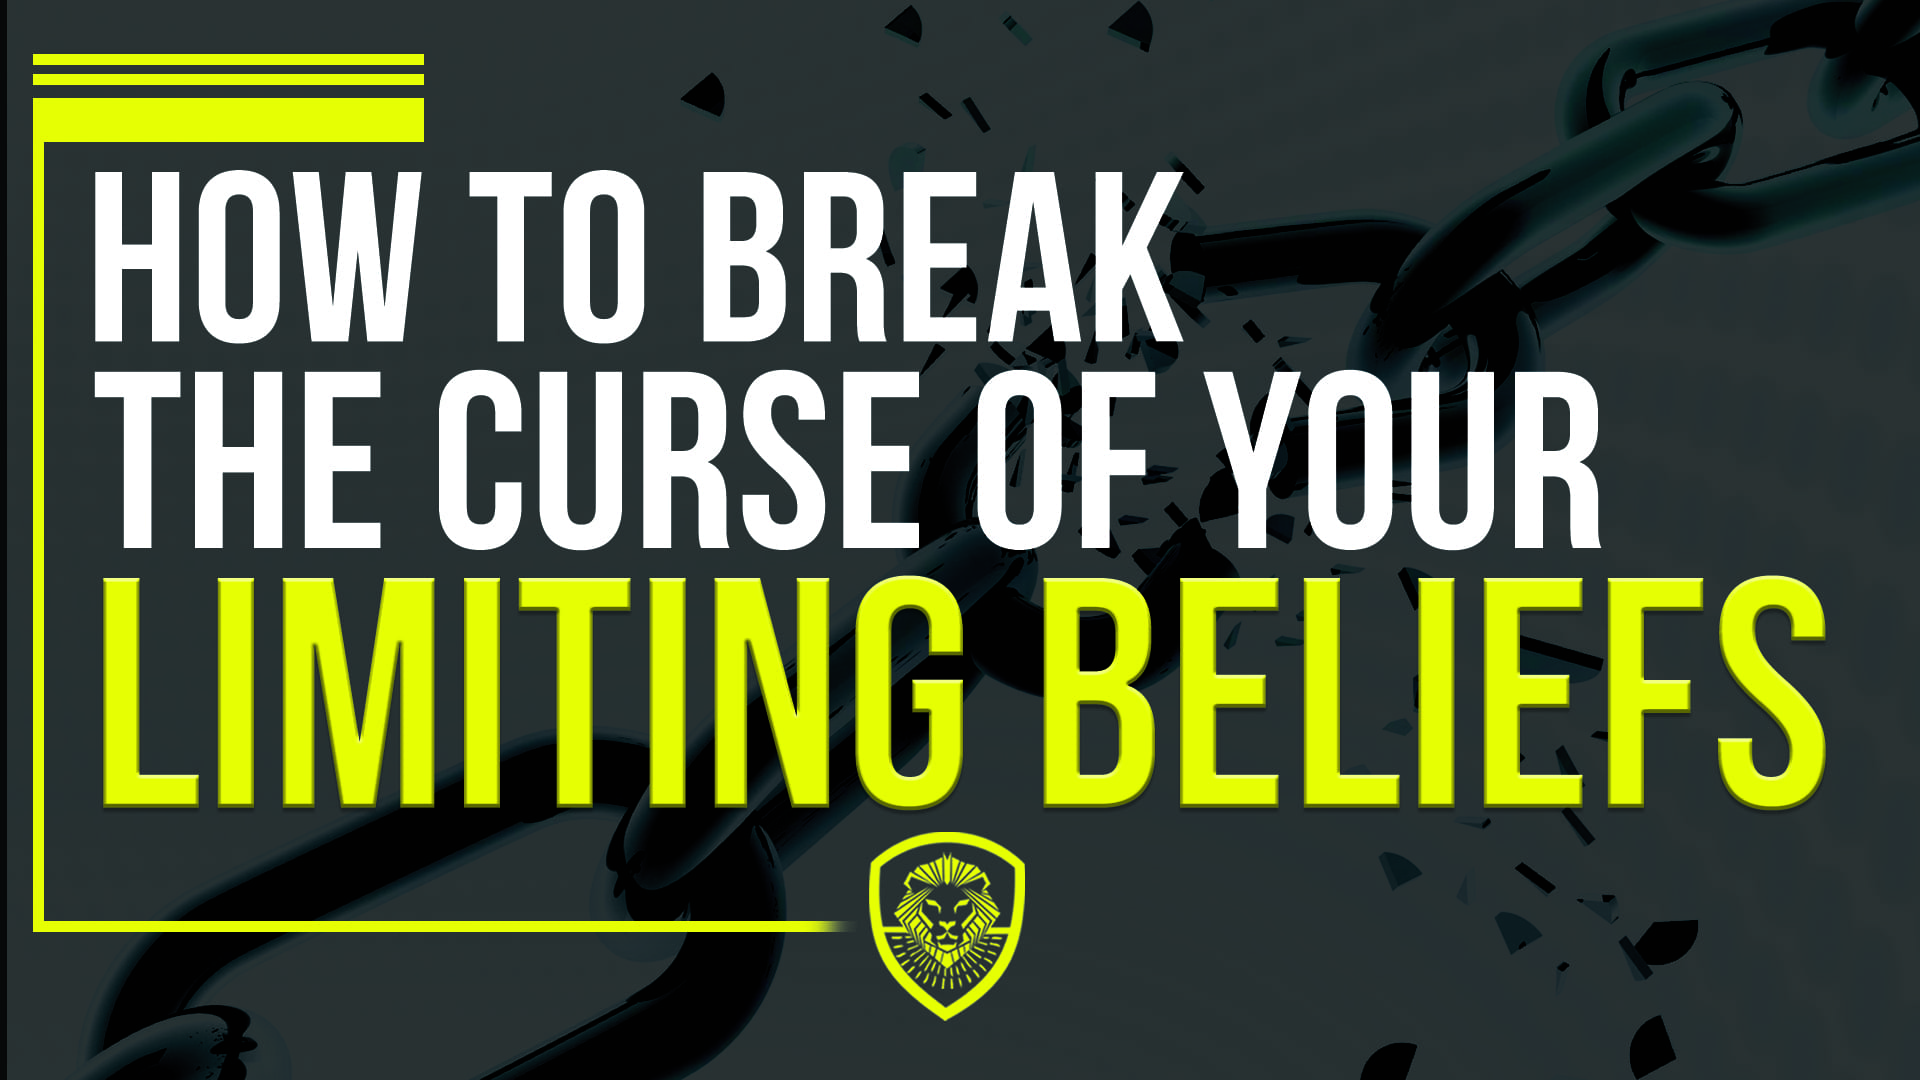 How To Break the Curse of Your Limiting Beliefs - Patrick